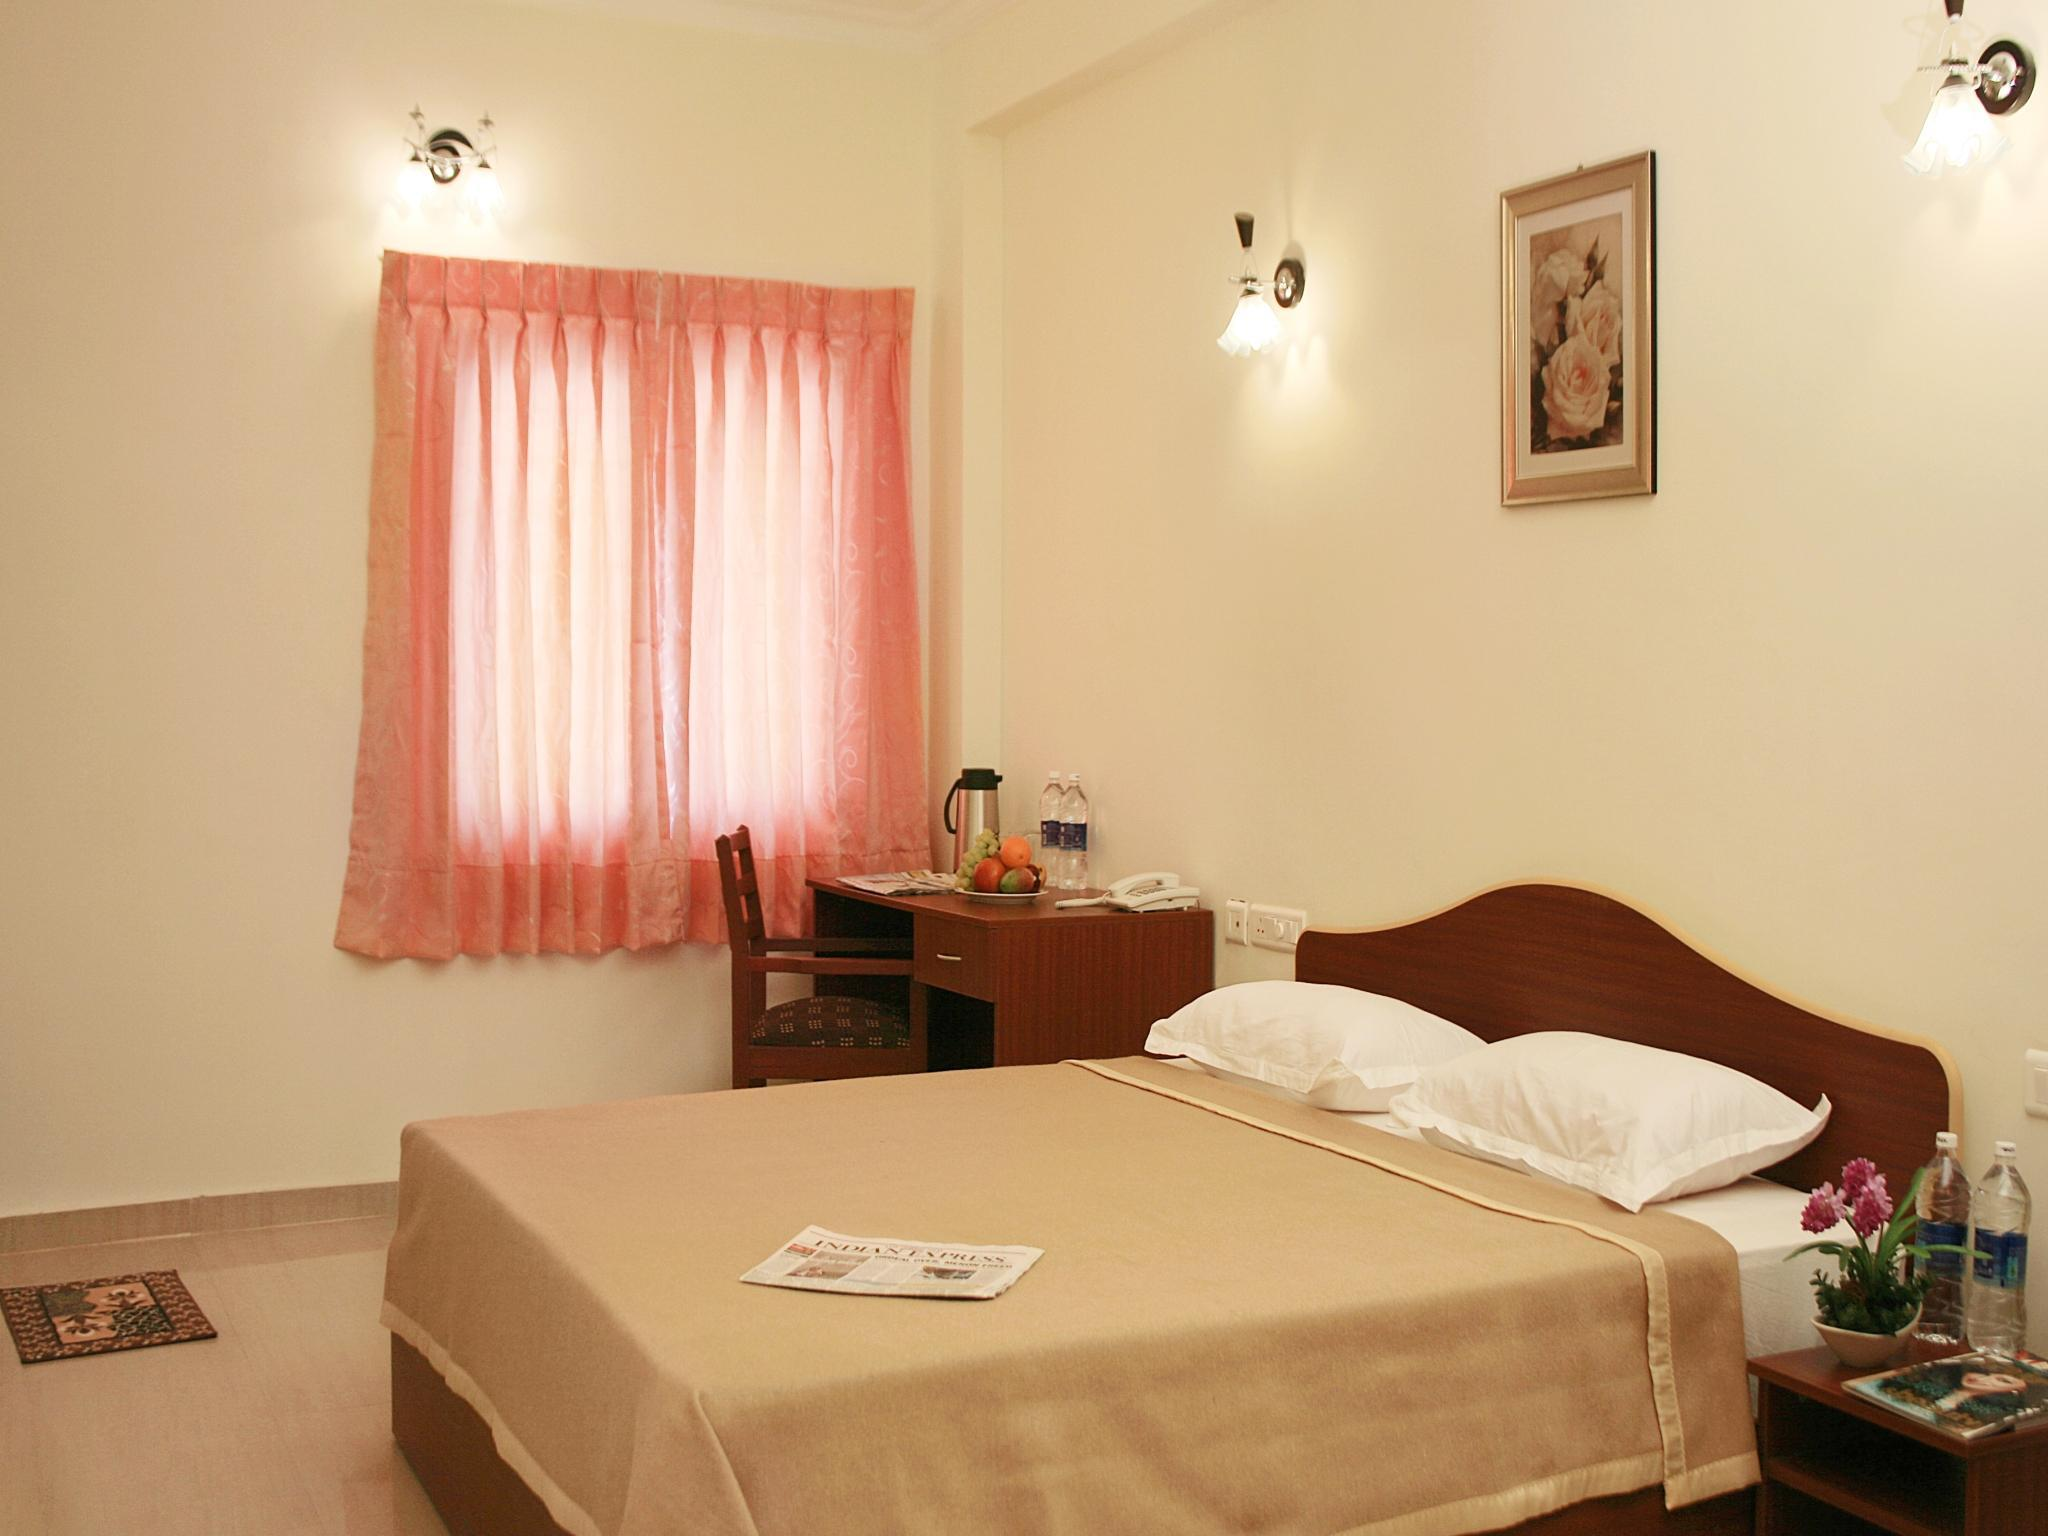 King-huone ilmastoinnilla ja aamiaisella (King Room With Air Conditioning and Breakfast Only)